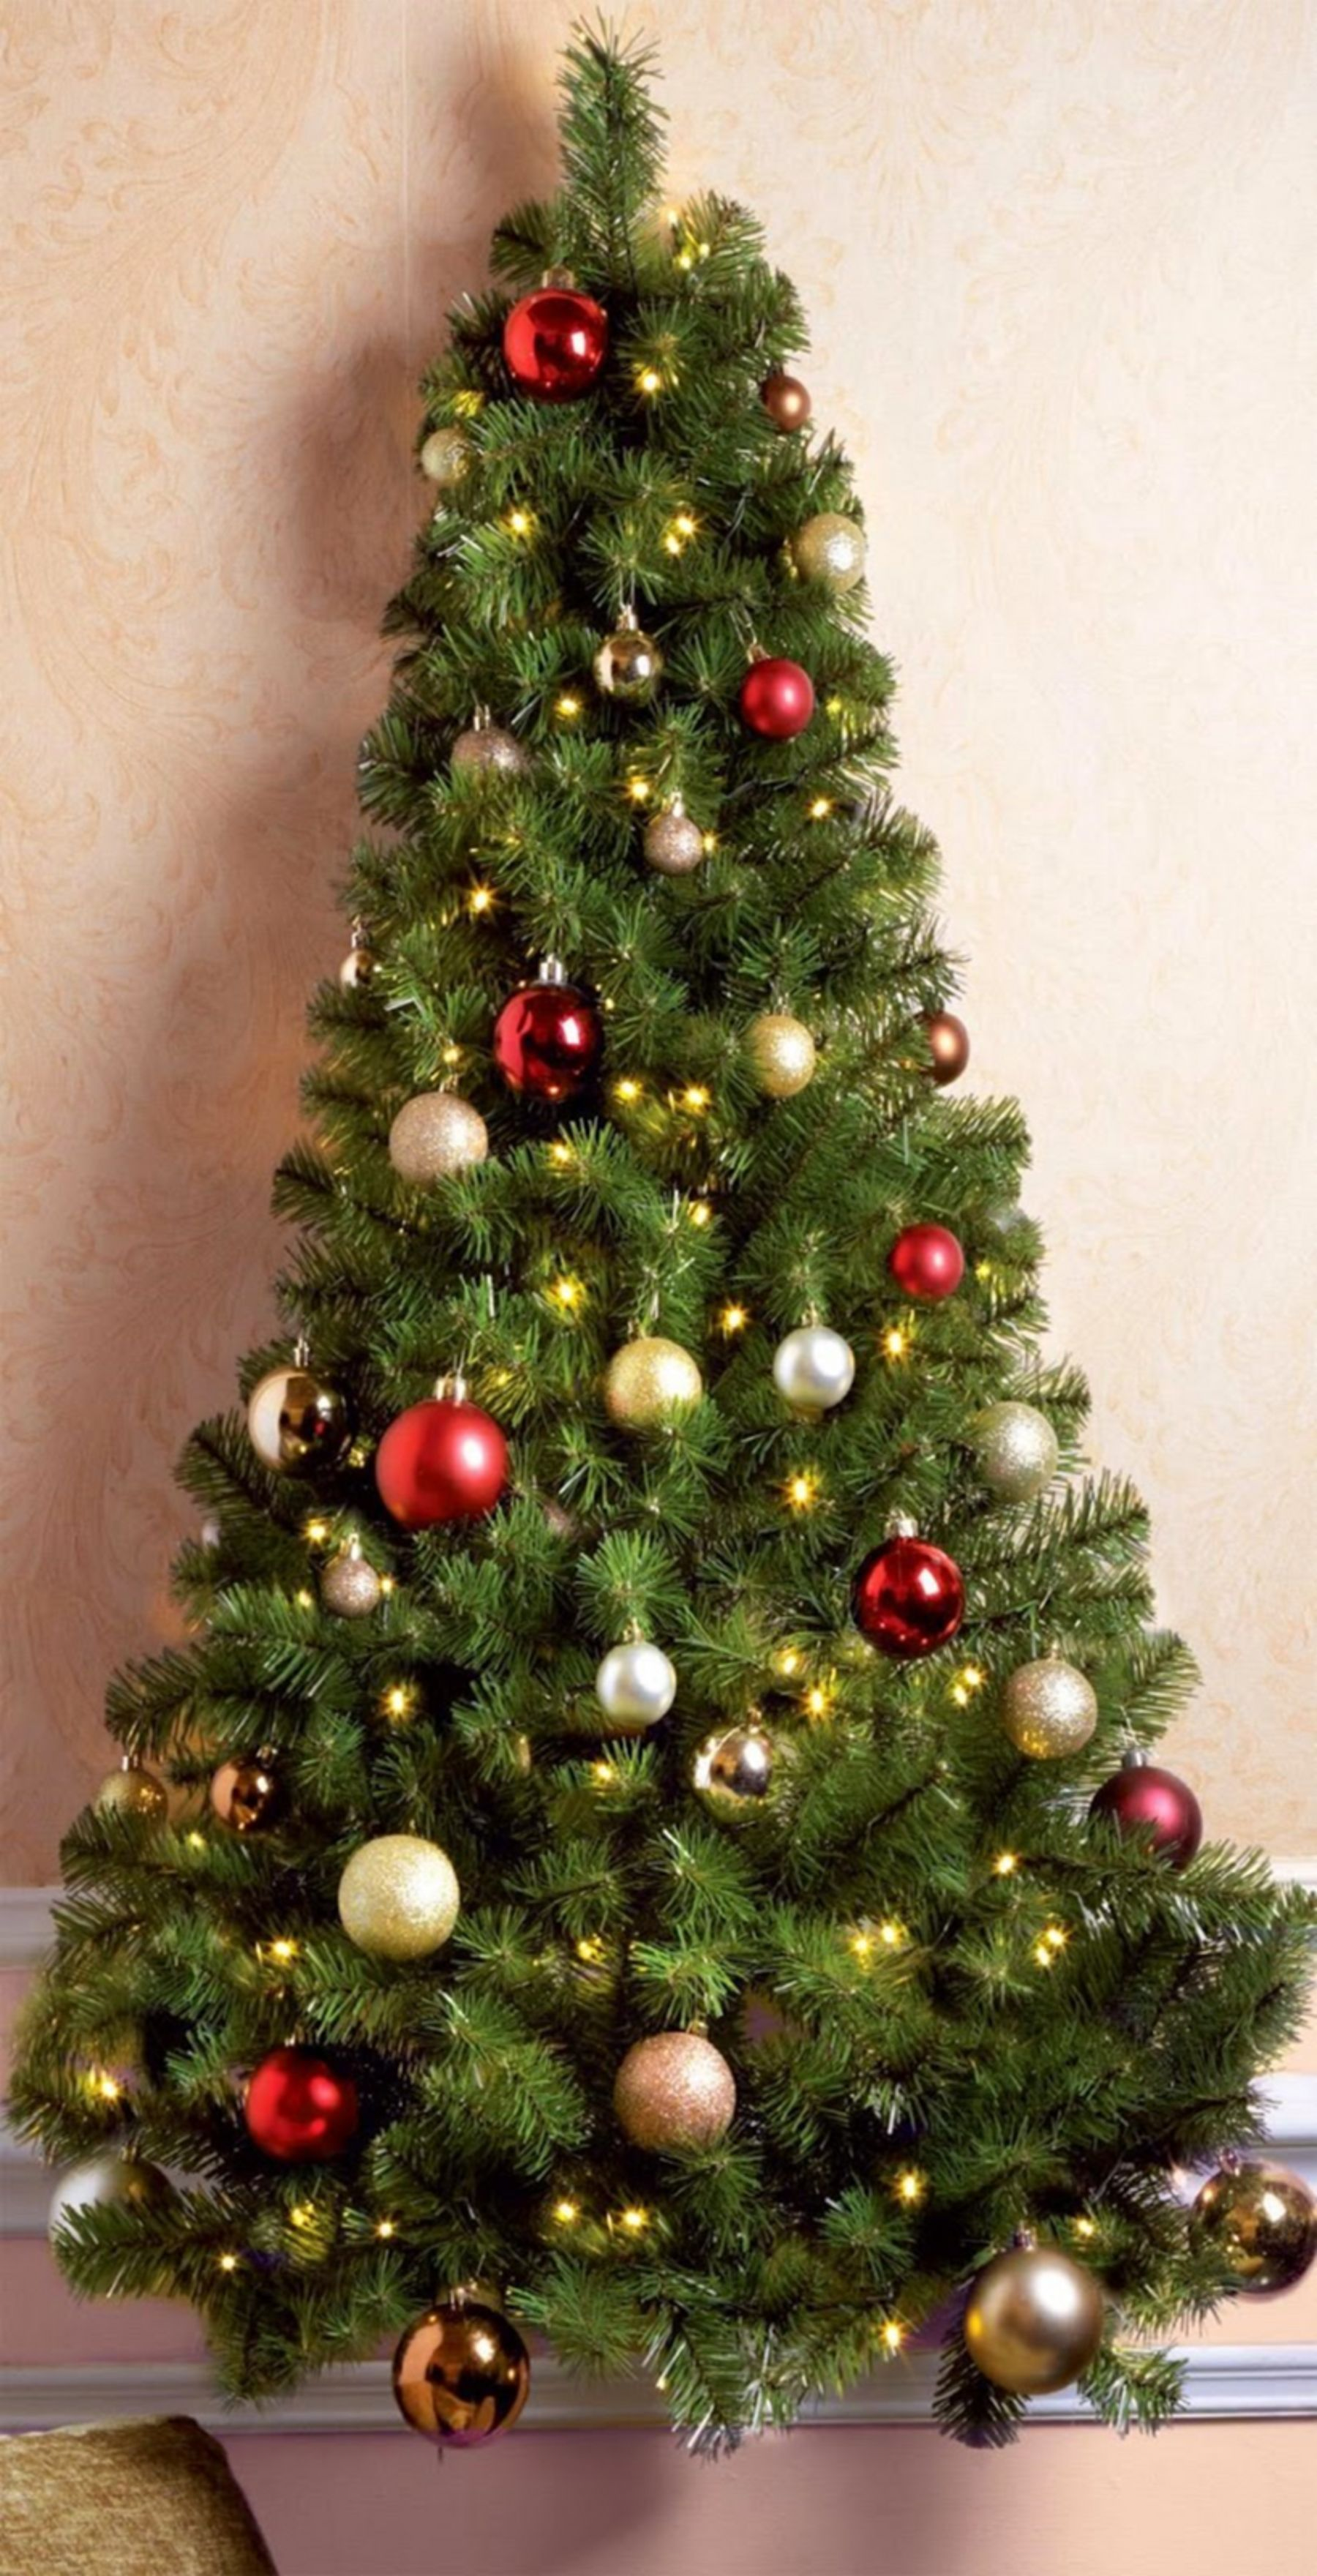 20 Amazing Christmas Decorations For Your Home Interior Wall